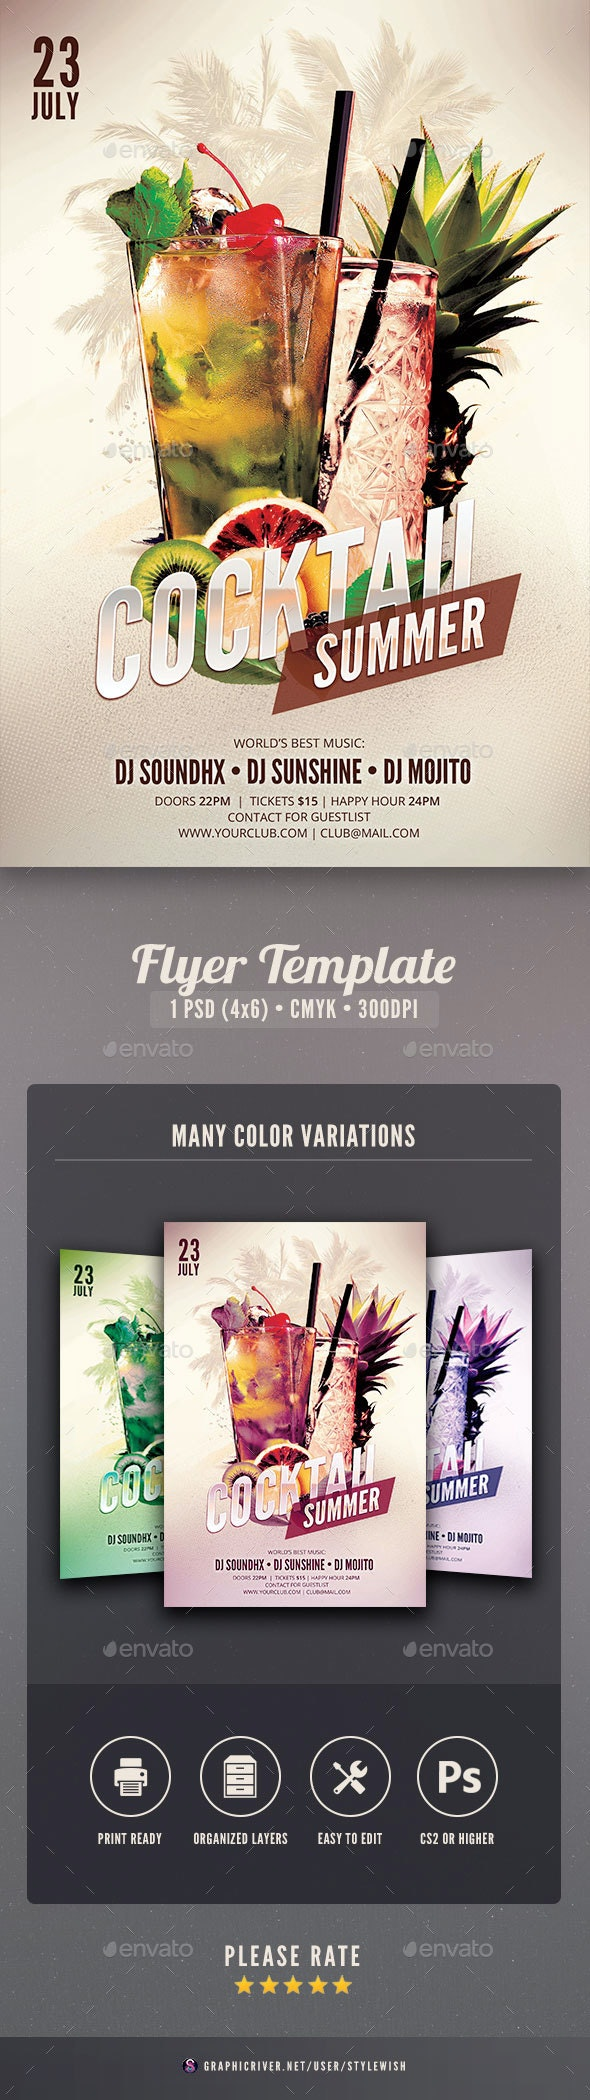 Cocktail Summer Flyer - Clubs & Parties Events